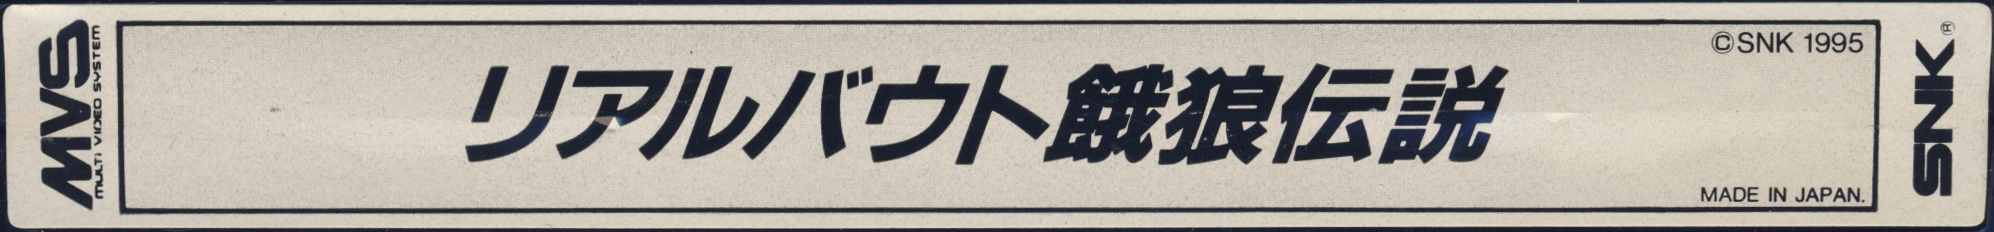 Real bout fatal fury jp label.jpg